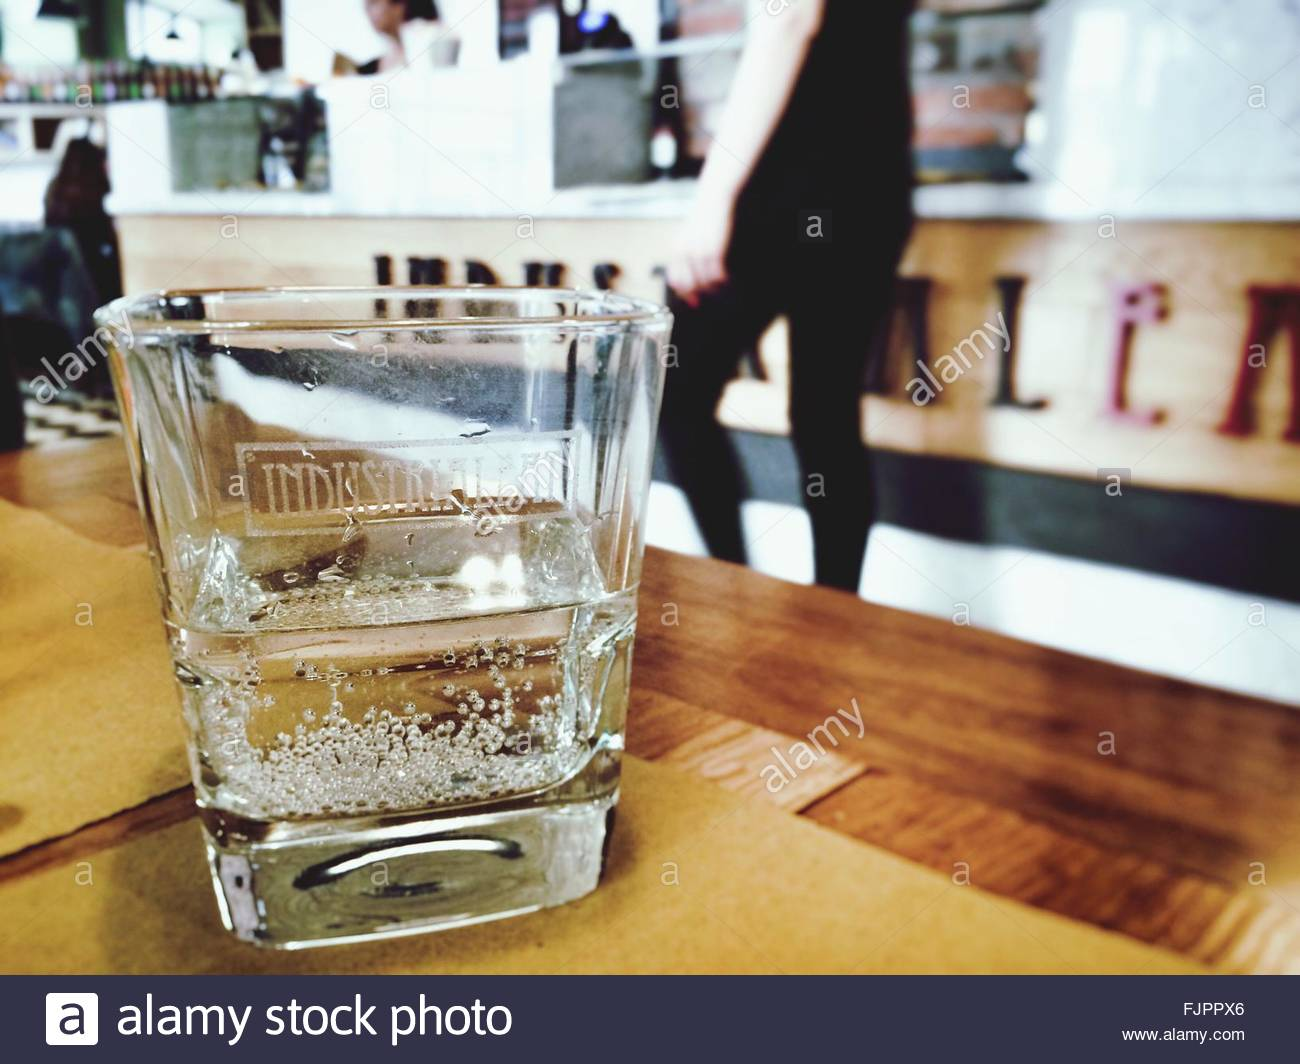 Close-Up Of Carbonated Water In Glass On Table - Stock Image